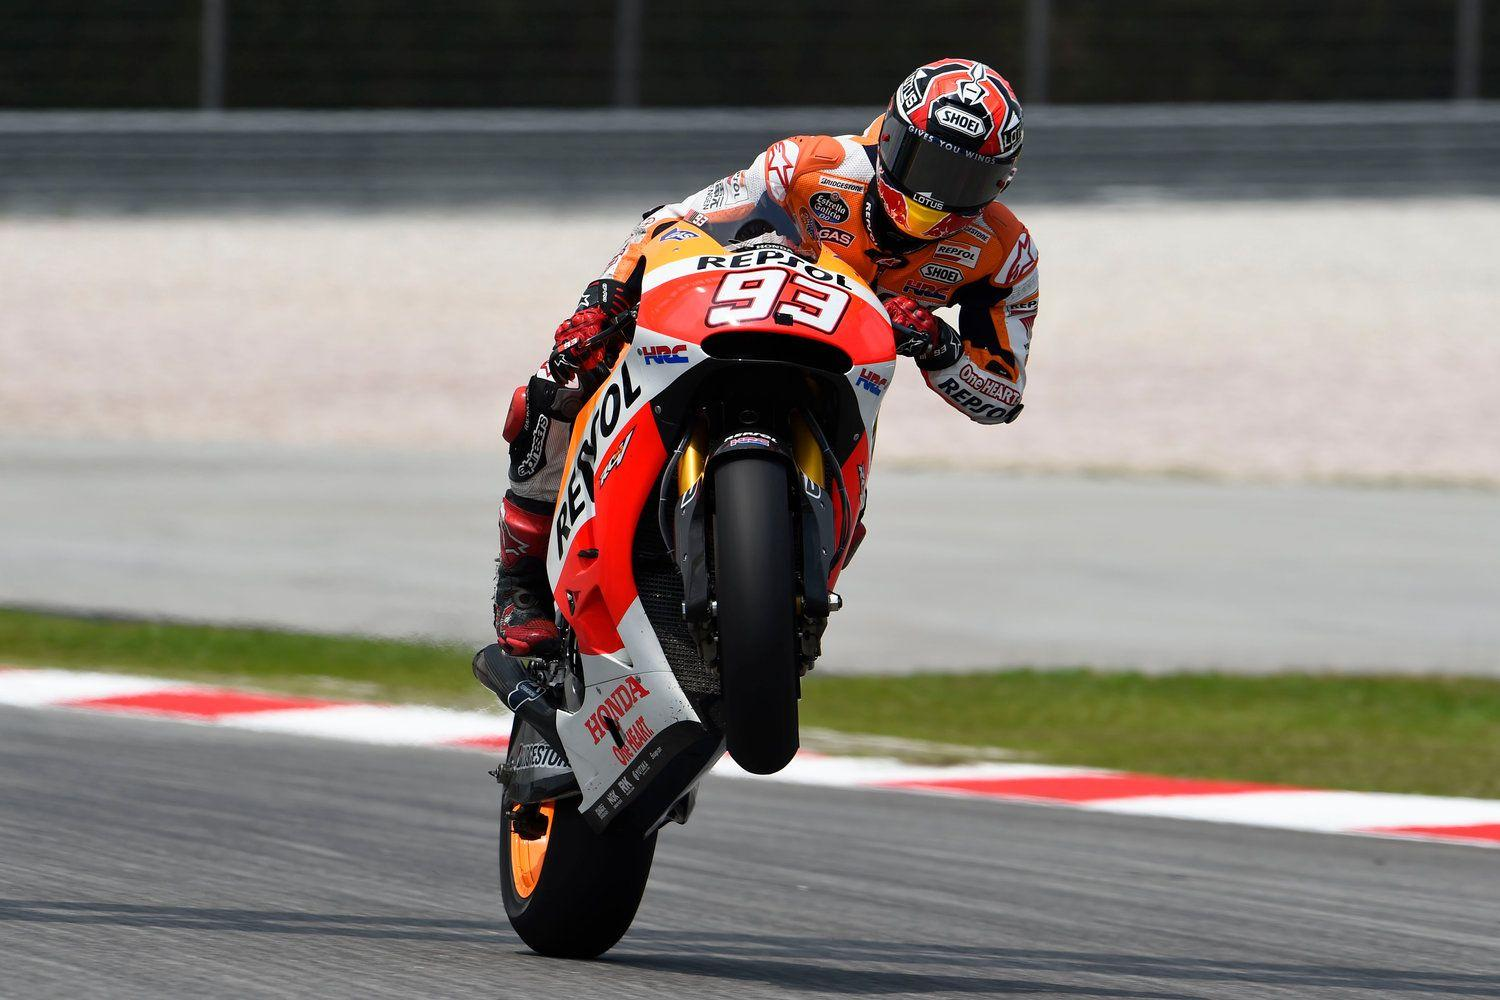 Valentino Rossi Caused Marc Marquez CRASH! CHARGES Will Be Taken!